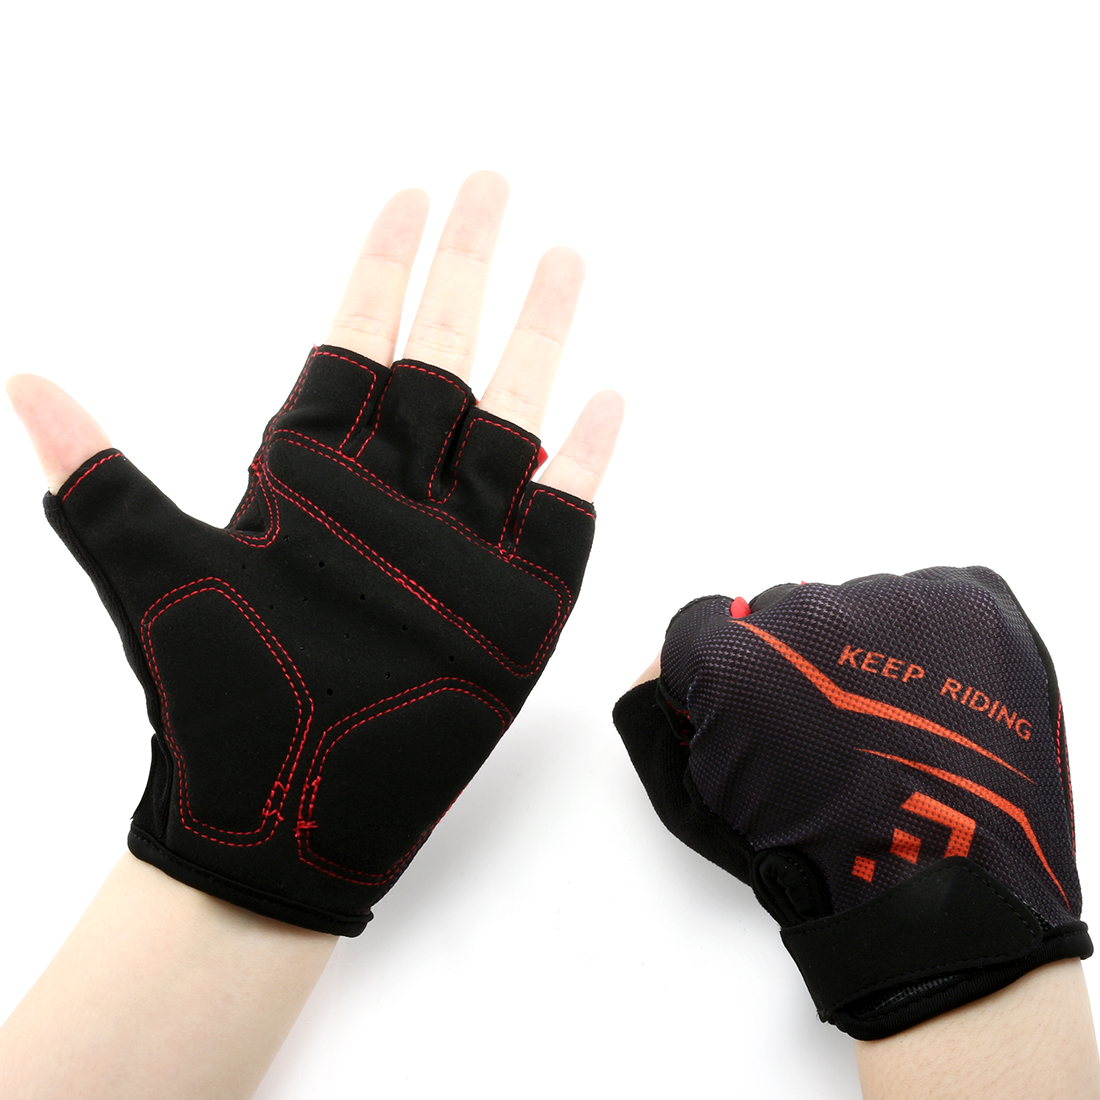 Outdoor Elasticized Fabric Sports Exercise Half Finger Cycling Gloves Palm Support Pair (Red S)